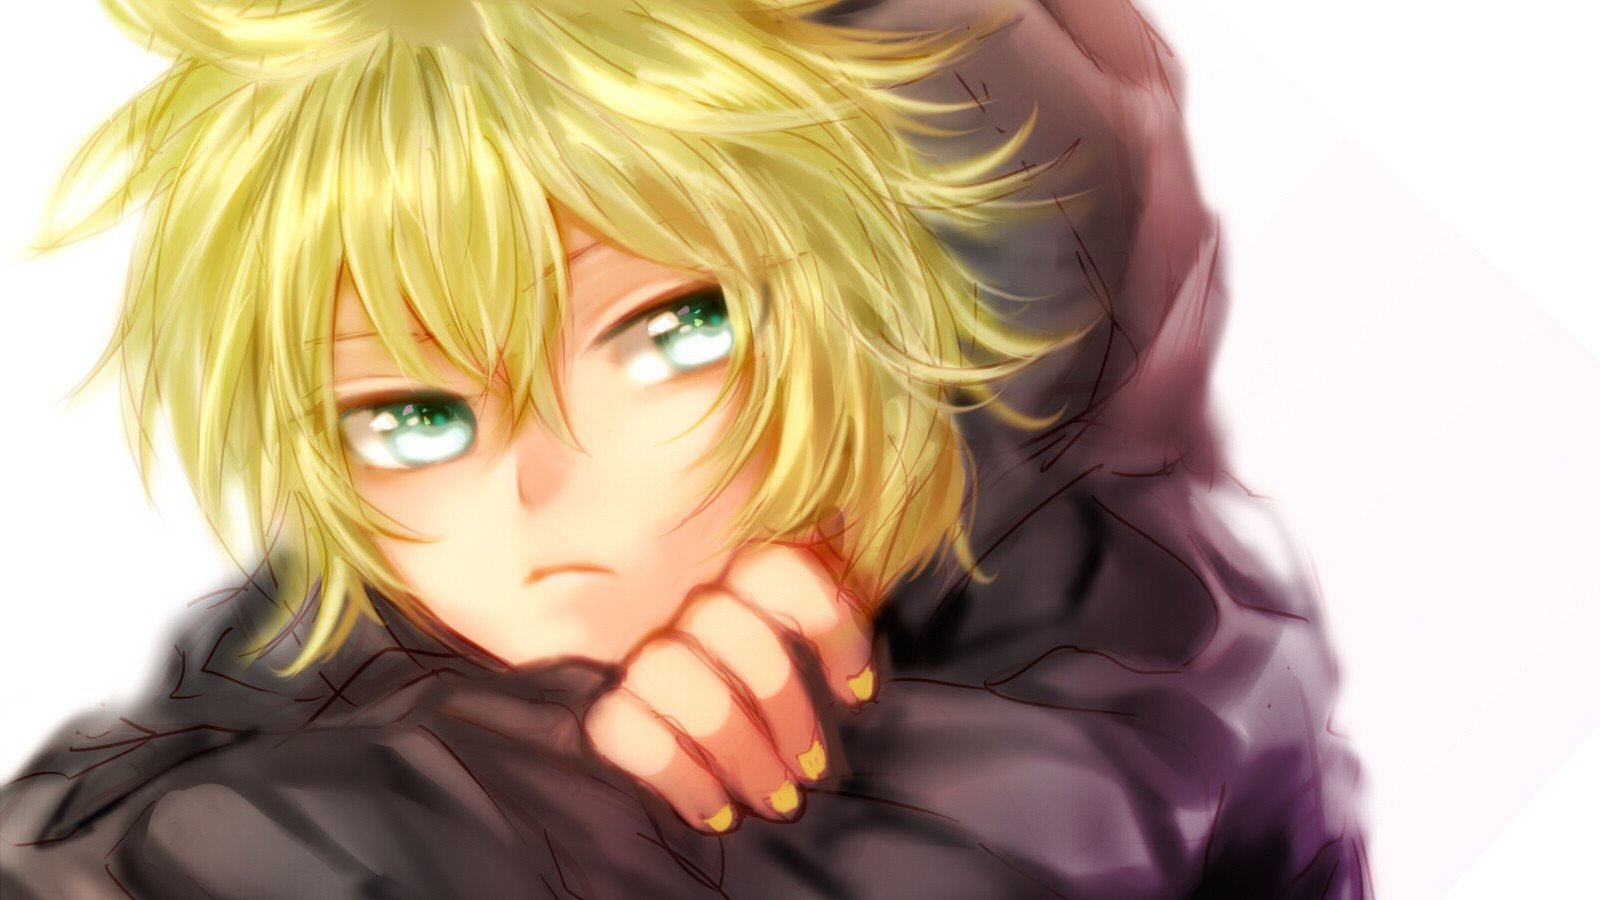 the gallery for gt anime boy blonde hair green eyes